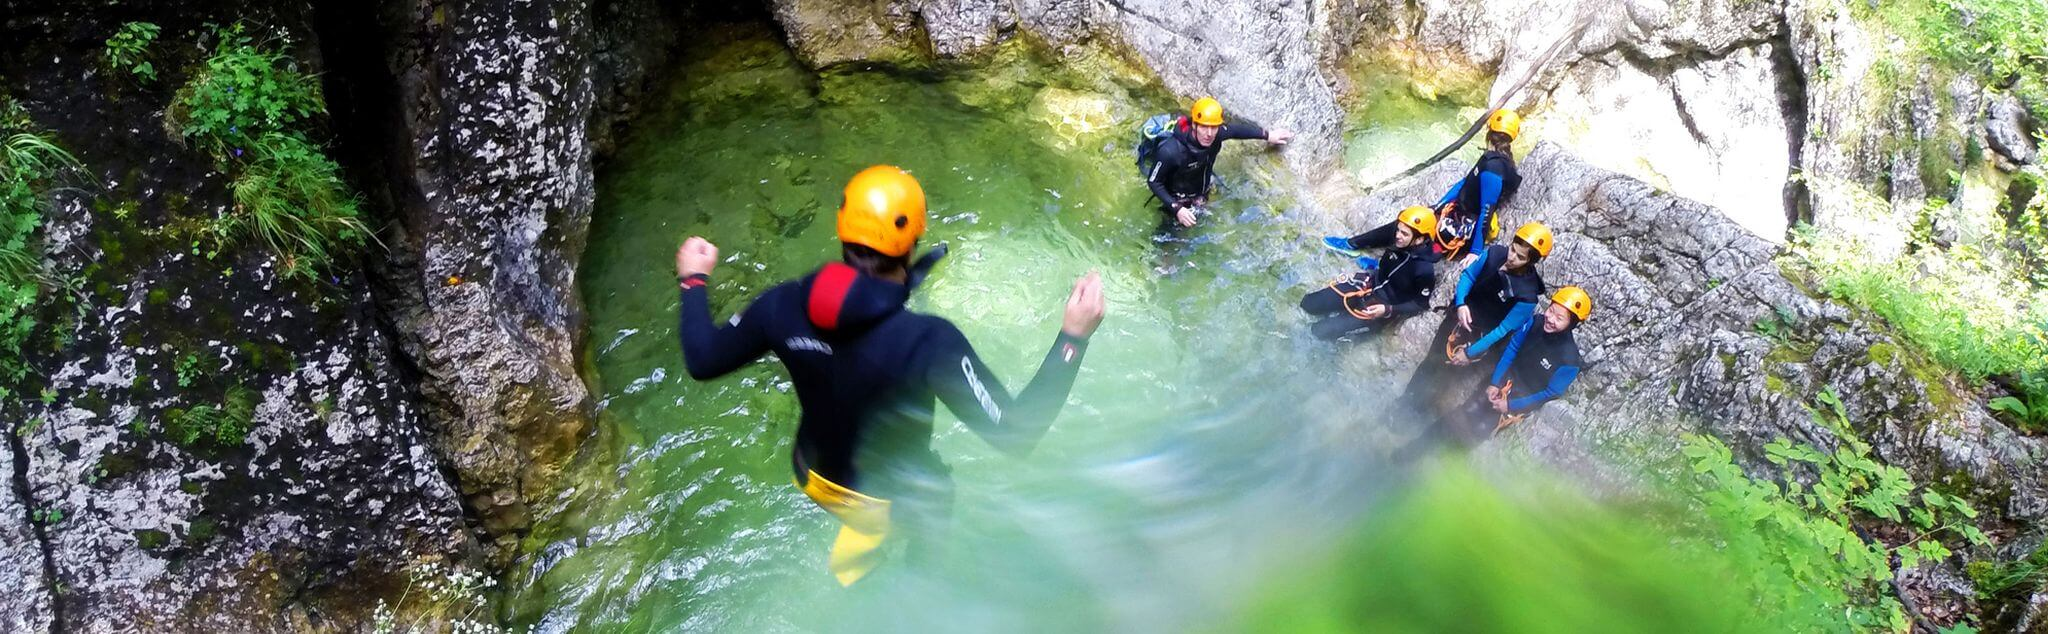 Canyoning in Somerset